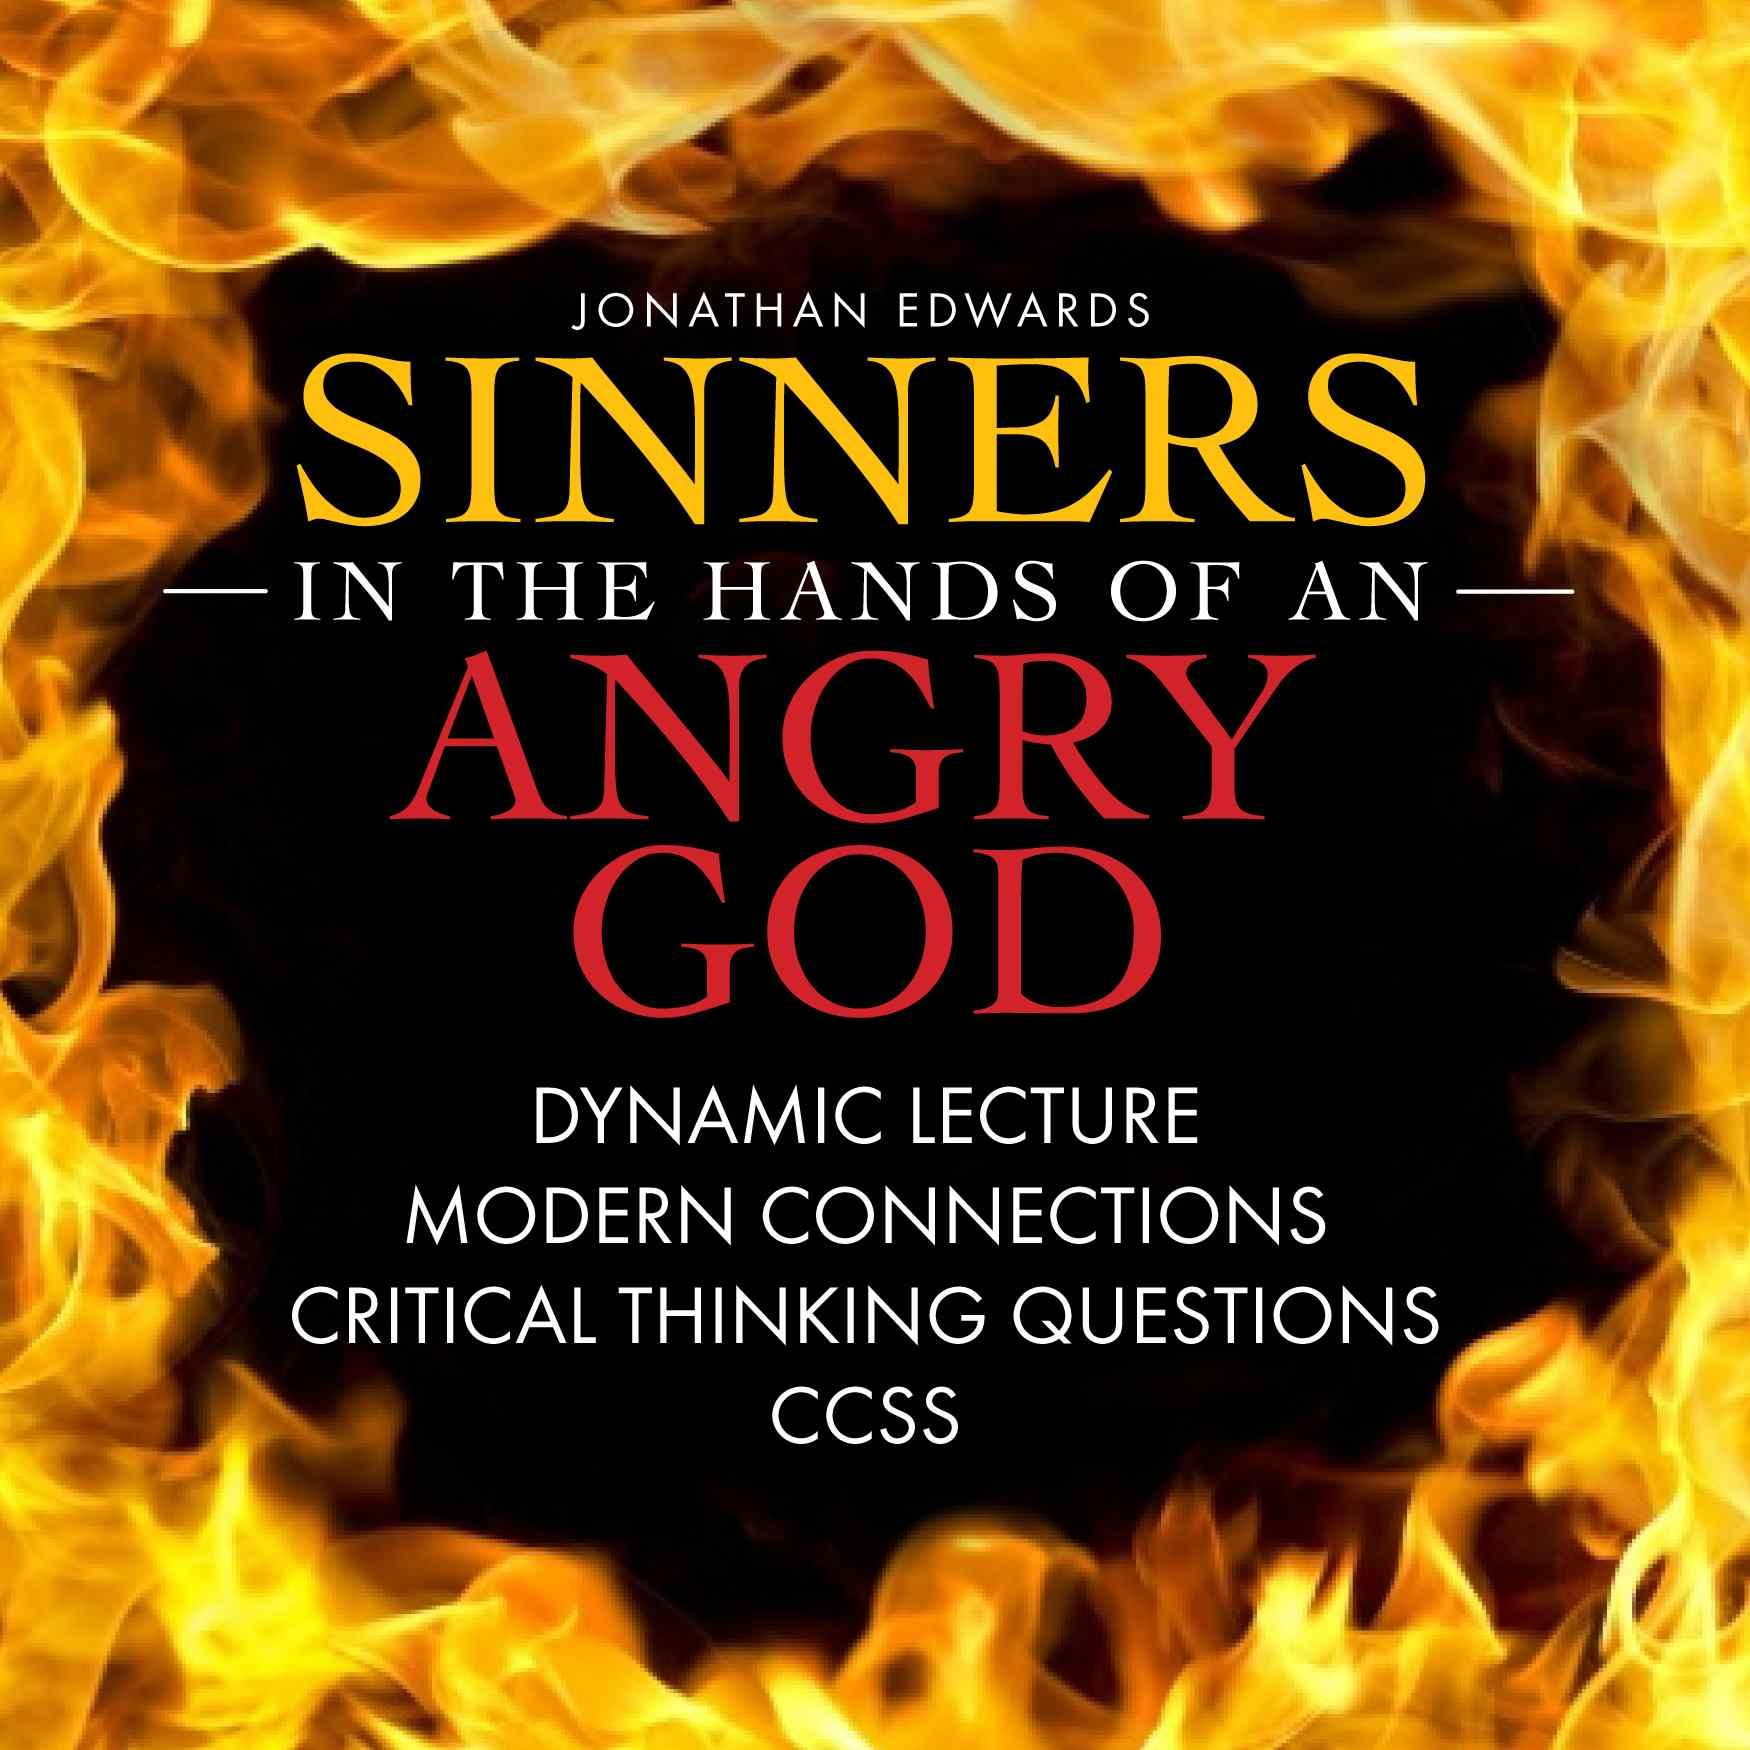 figure of speech within jonathan edwards sinners in the hands of an angry god Sinners in the hands of an angry god by jonathan edwards (1741) pg 44-51 neitzel, american literature instructional targets: analyze figures of speech (personification, metaphor, repetition.